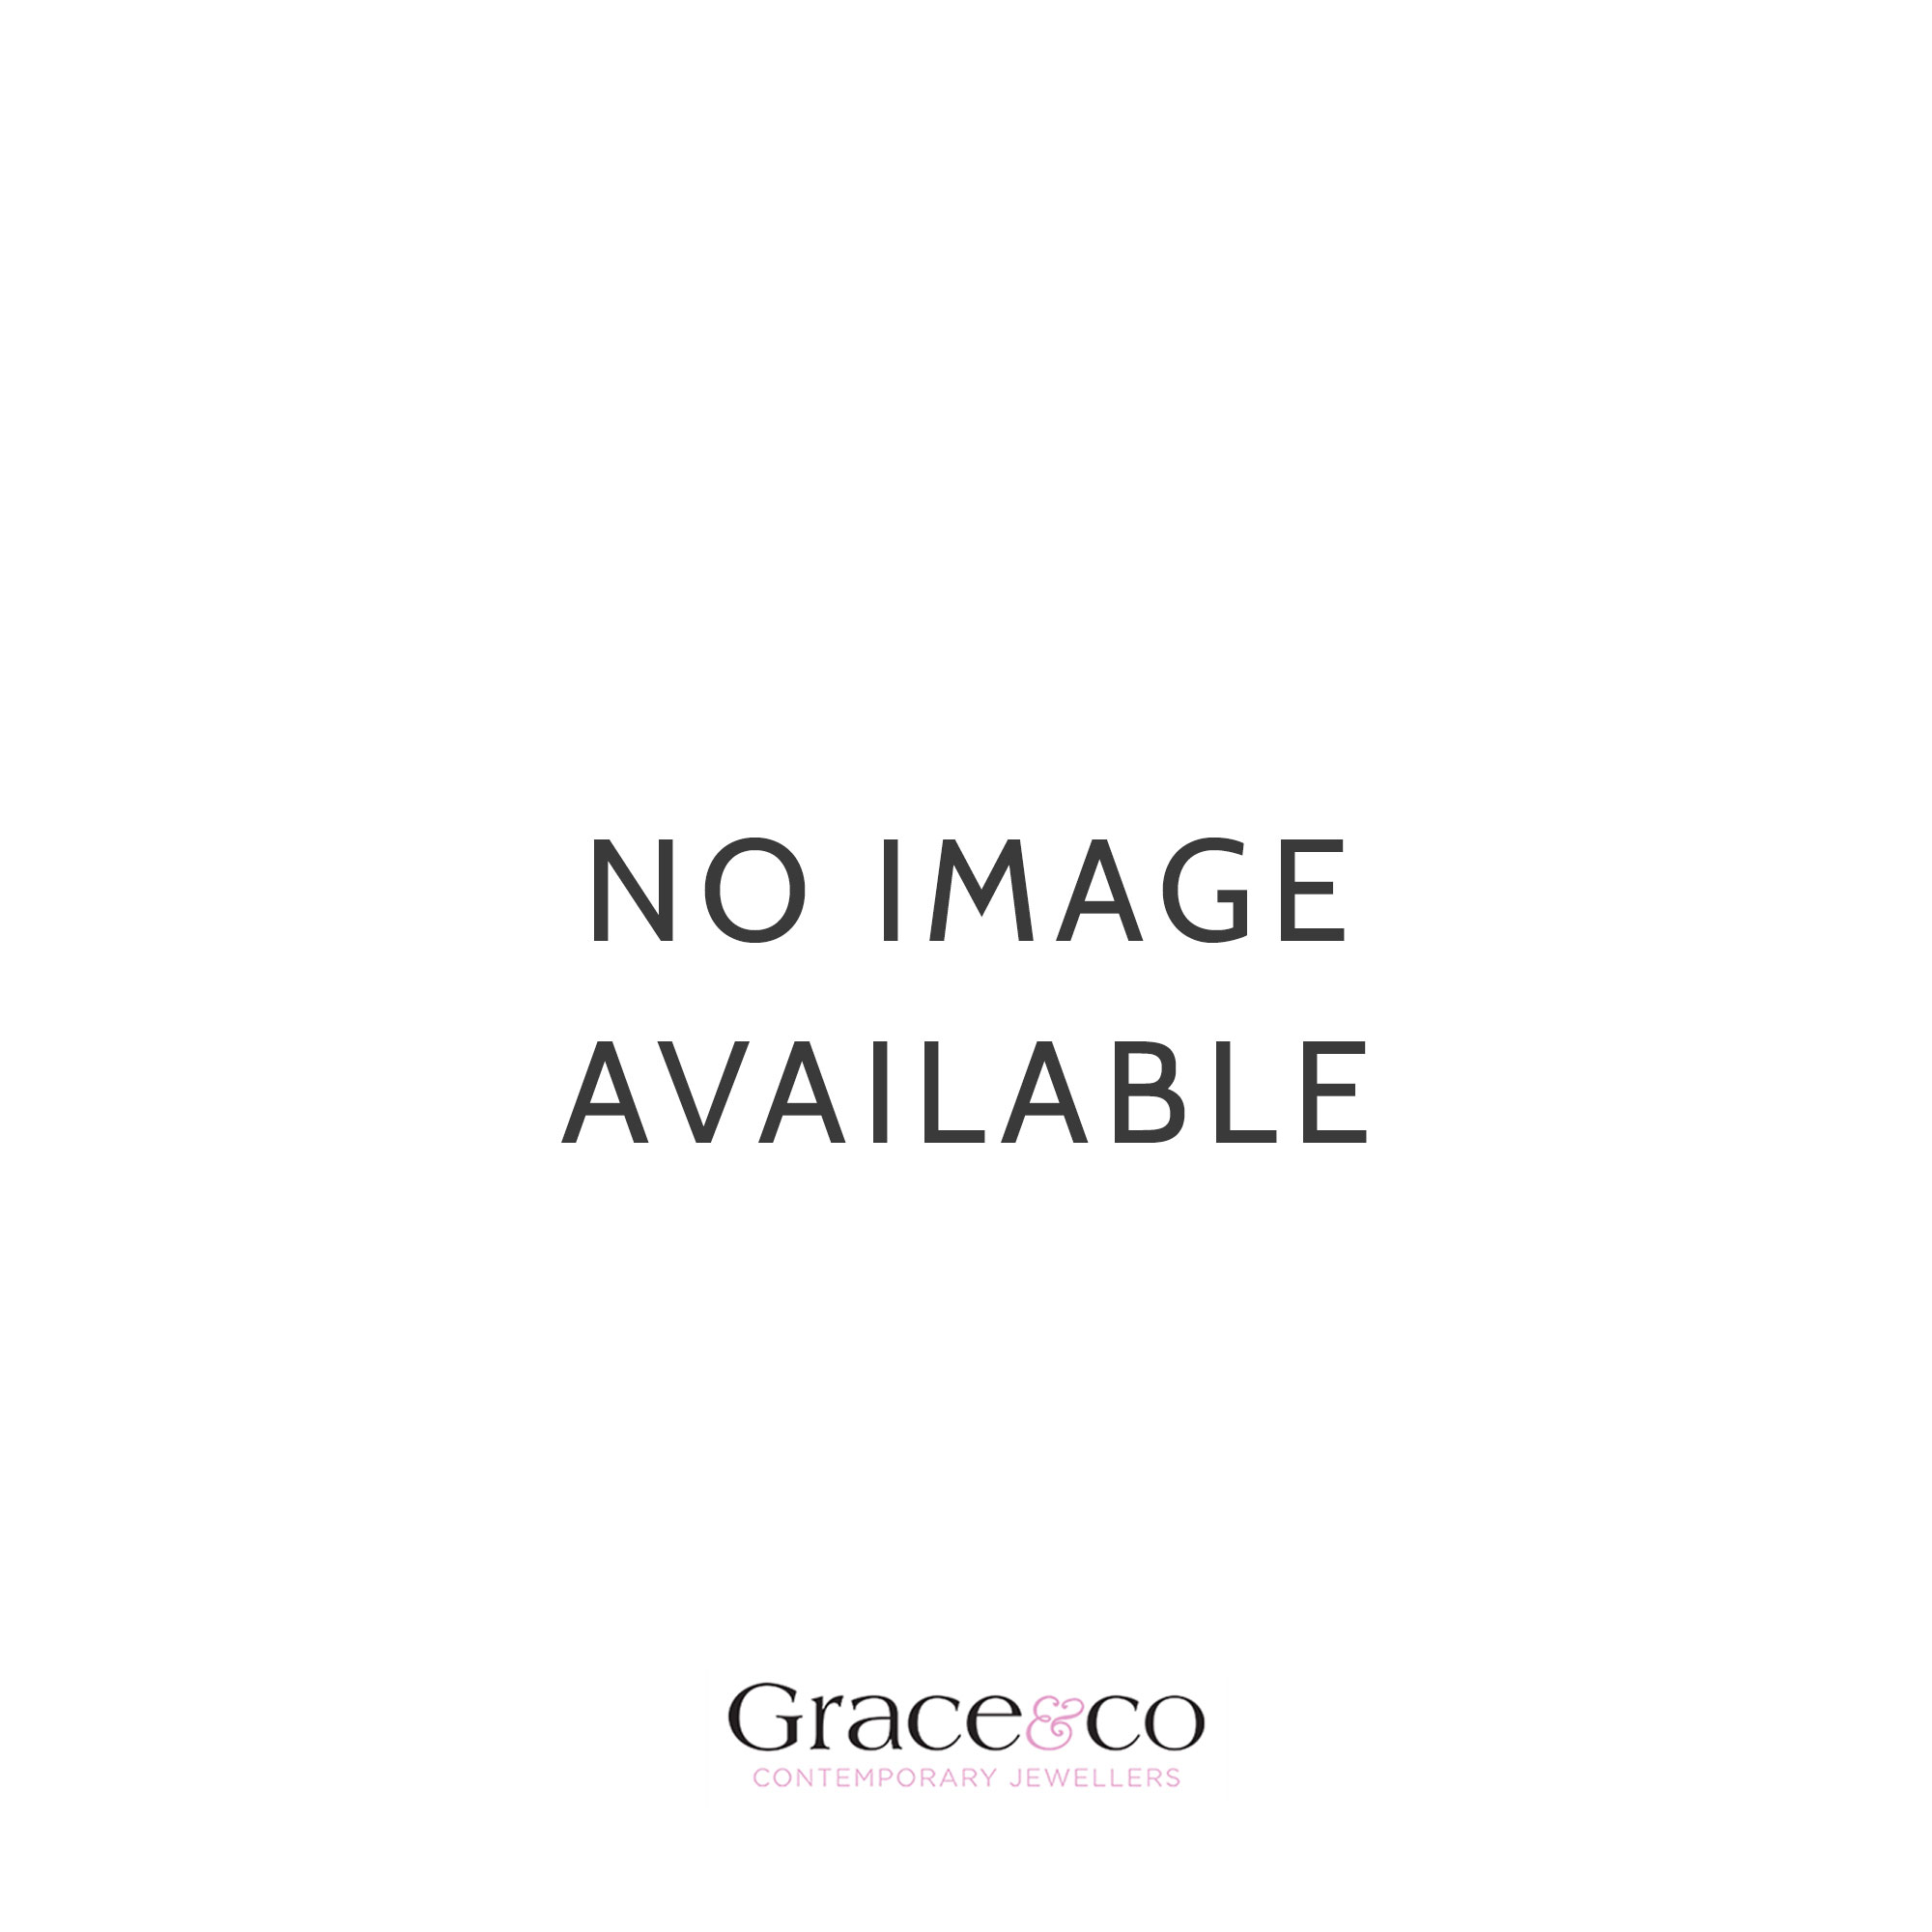 Qudo Tondo Deluxe Rose Gold and Black Diamond Crystal Ring Gem Top - 13mm